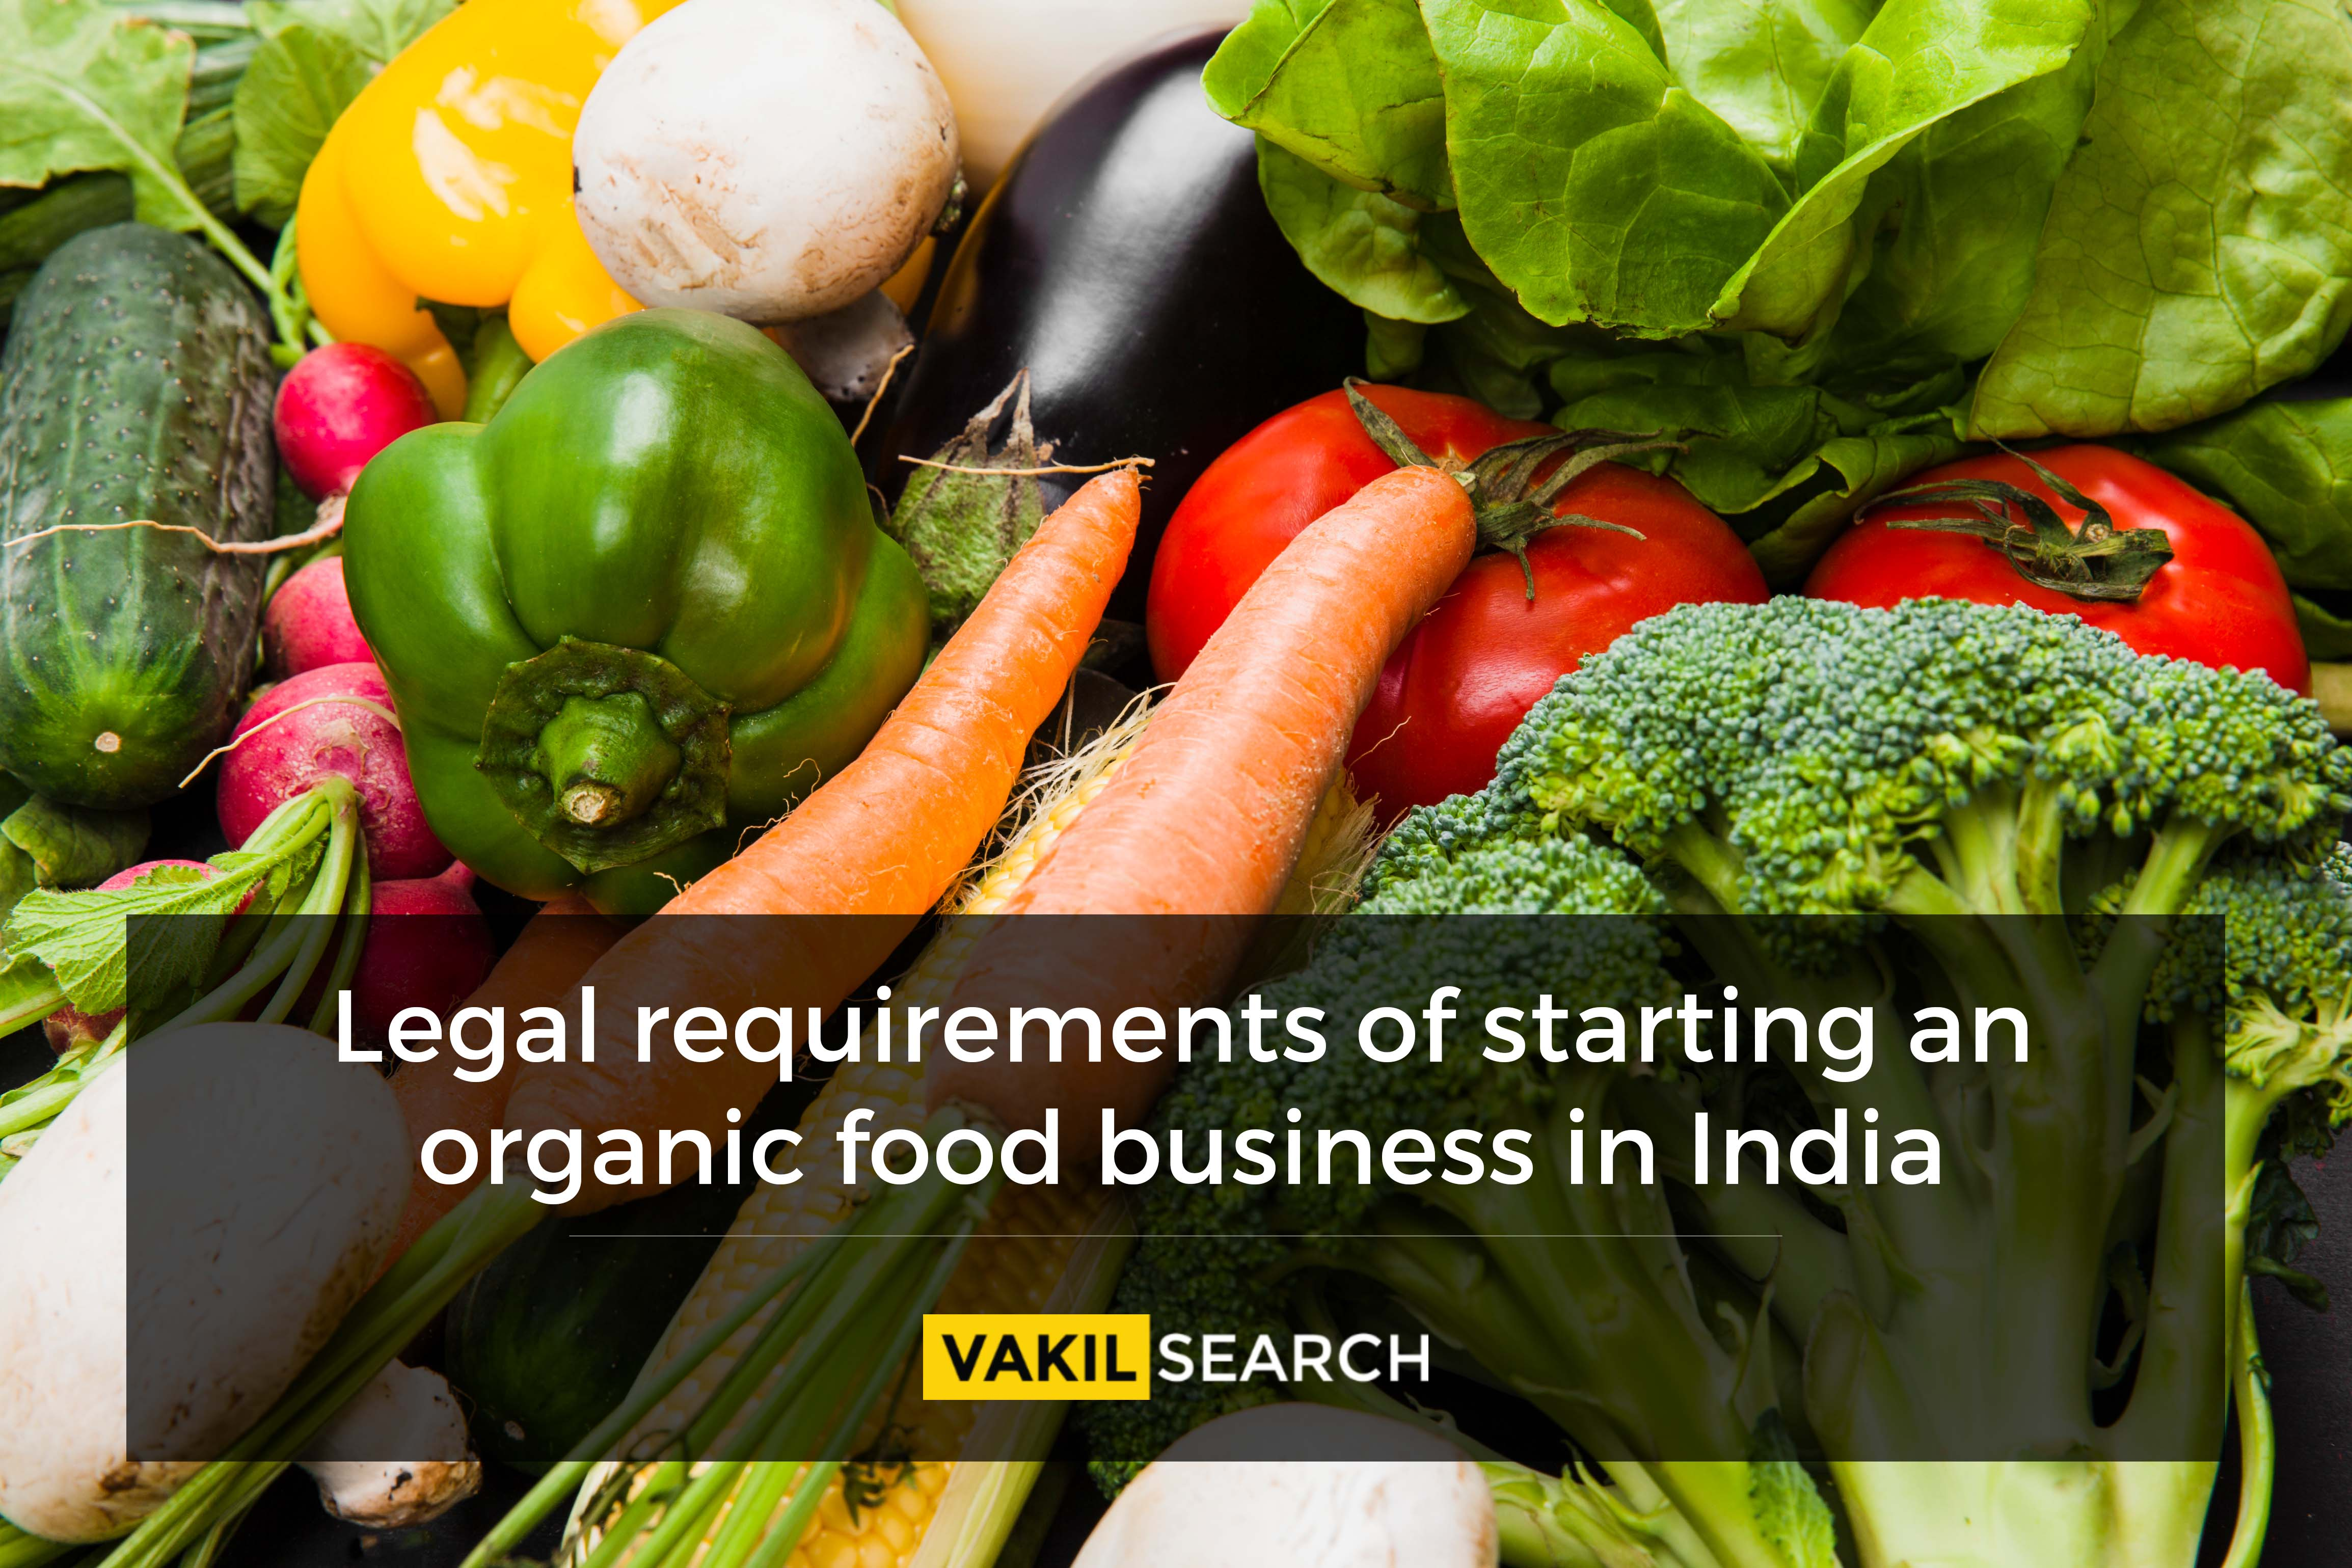 Legal Requirements Of Starting An Organic Food Business In India